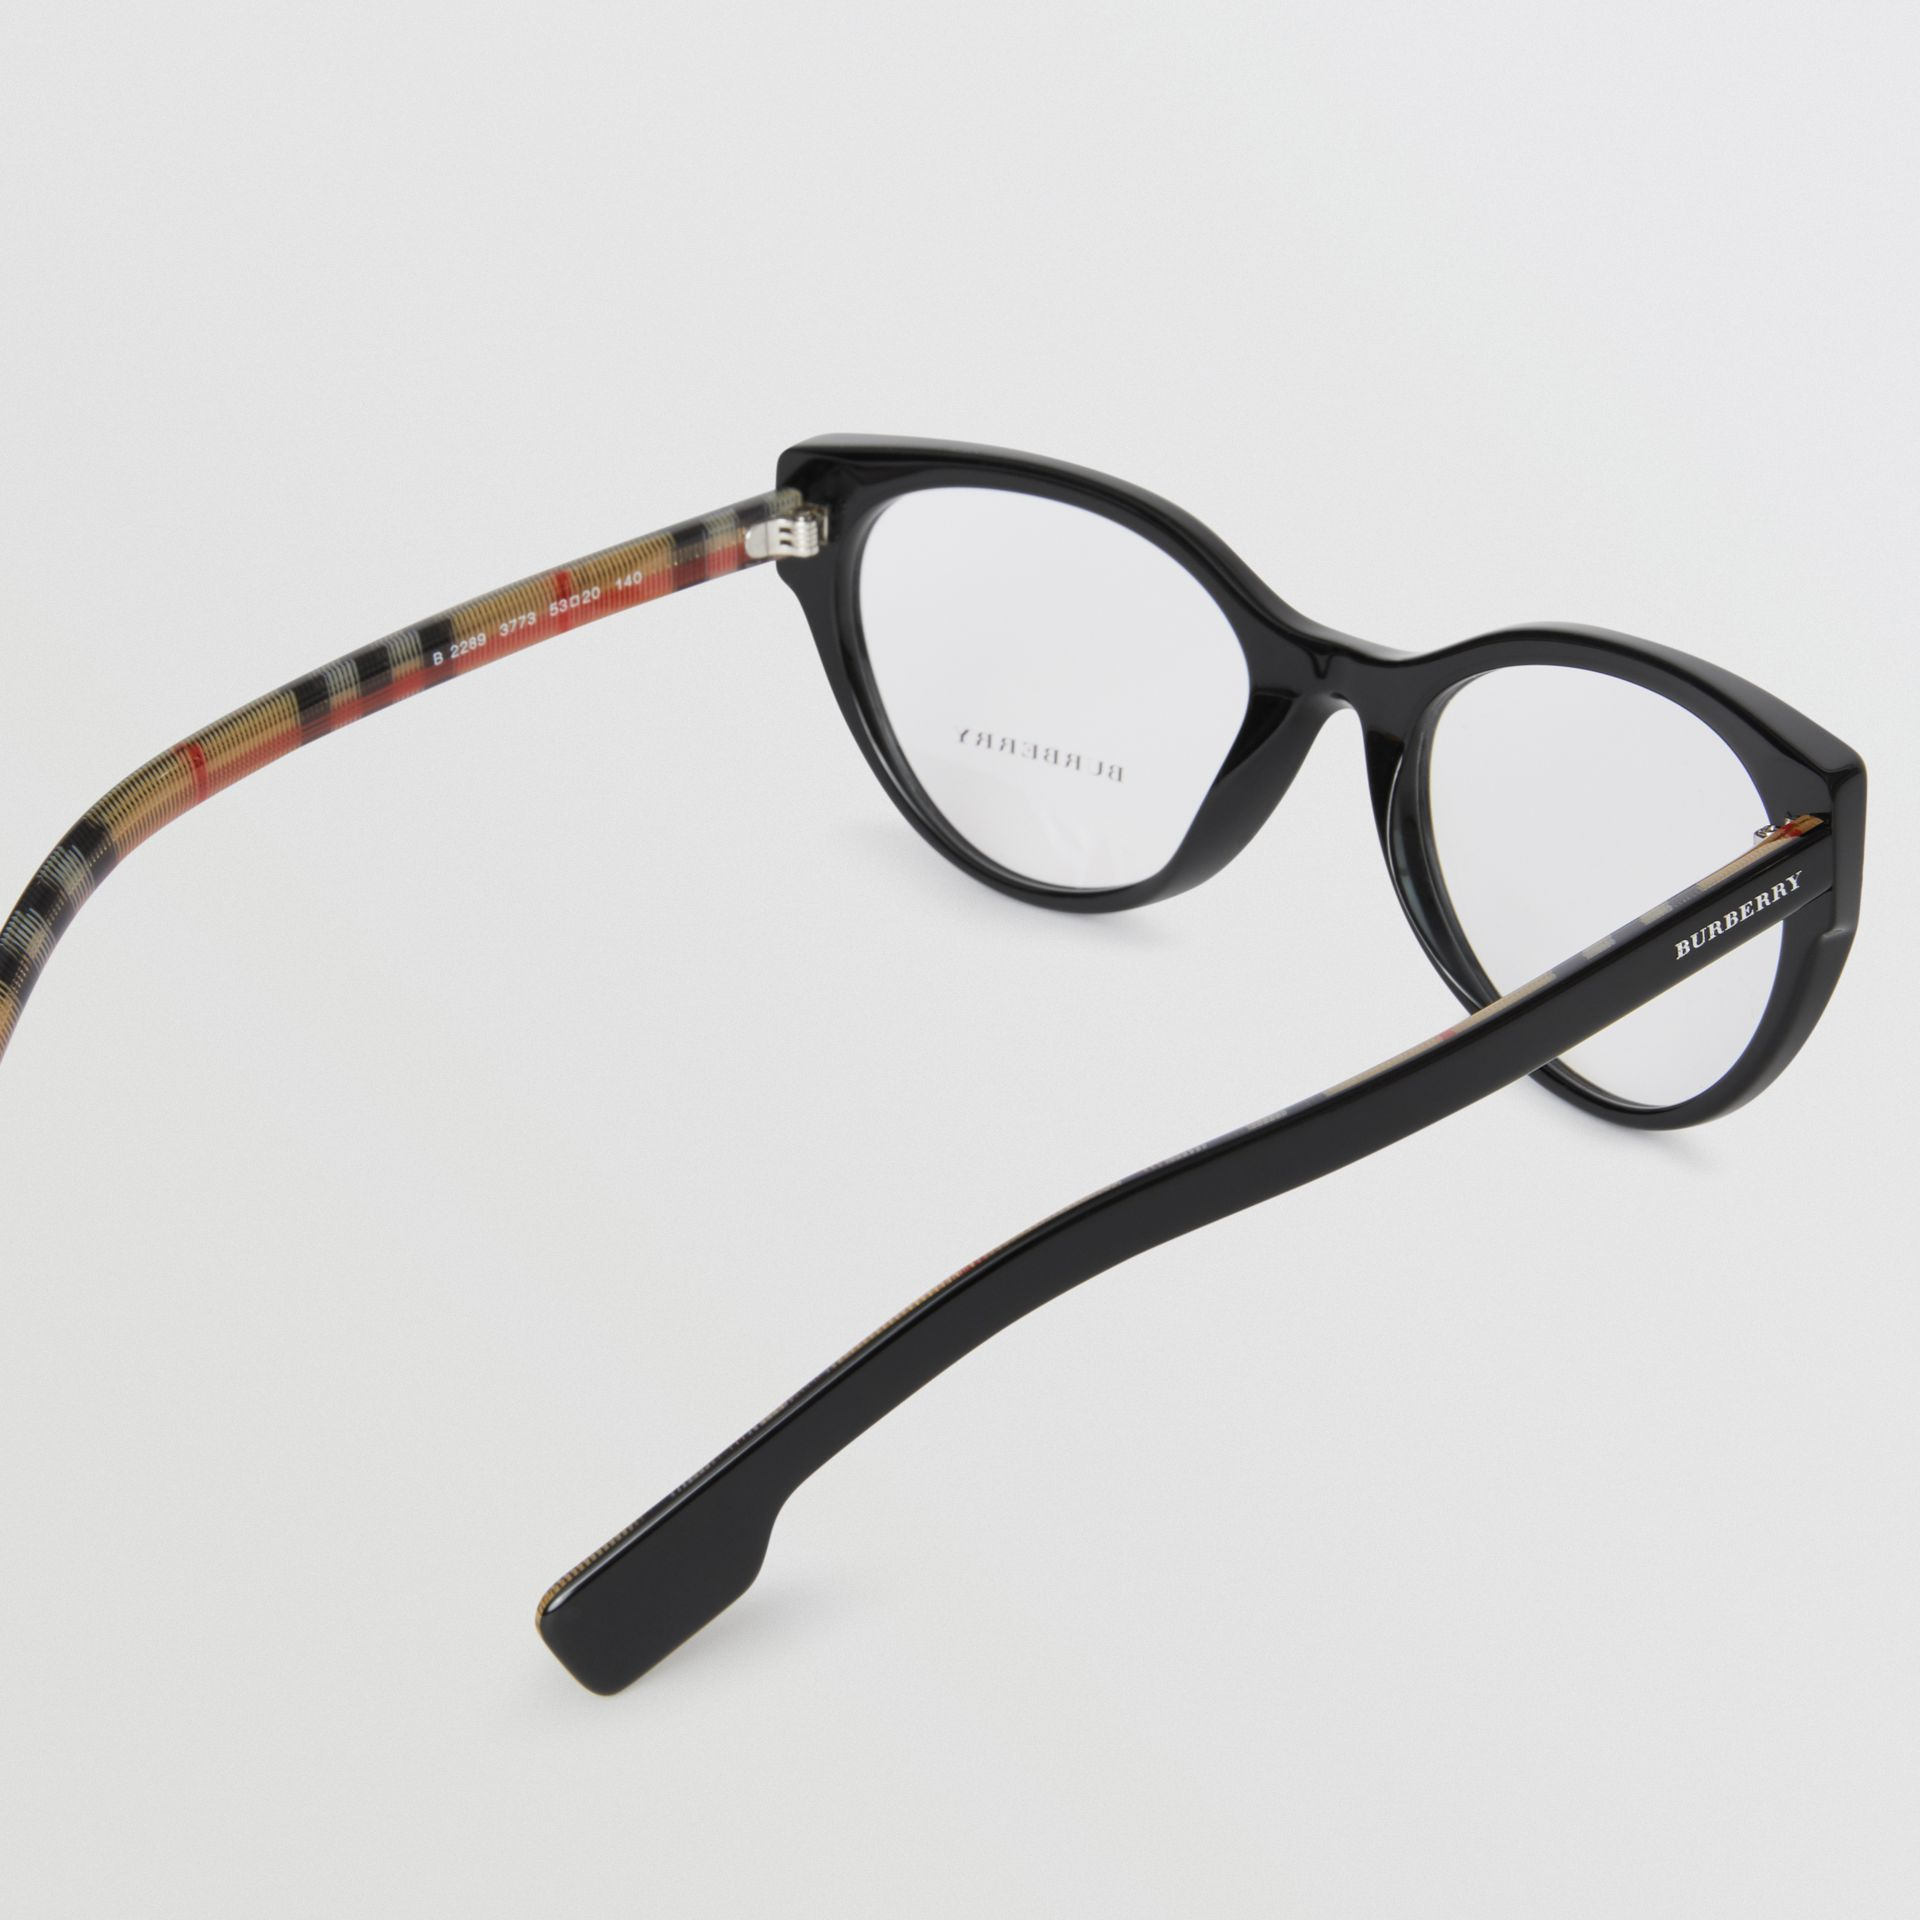 Vintage Check Detail Cat-eye Optical Frames in Black - Women | Burberry Hong Kong - gallery image 4